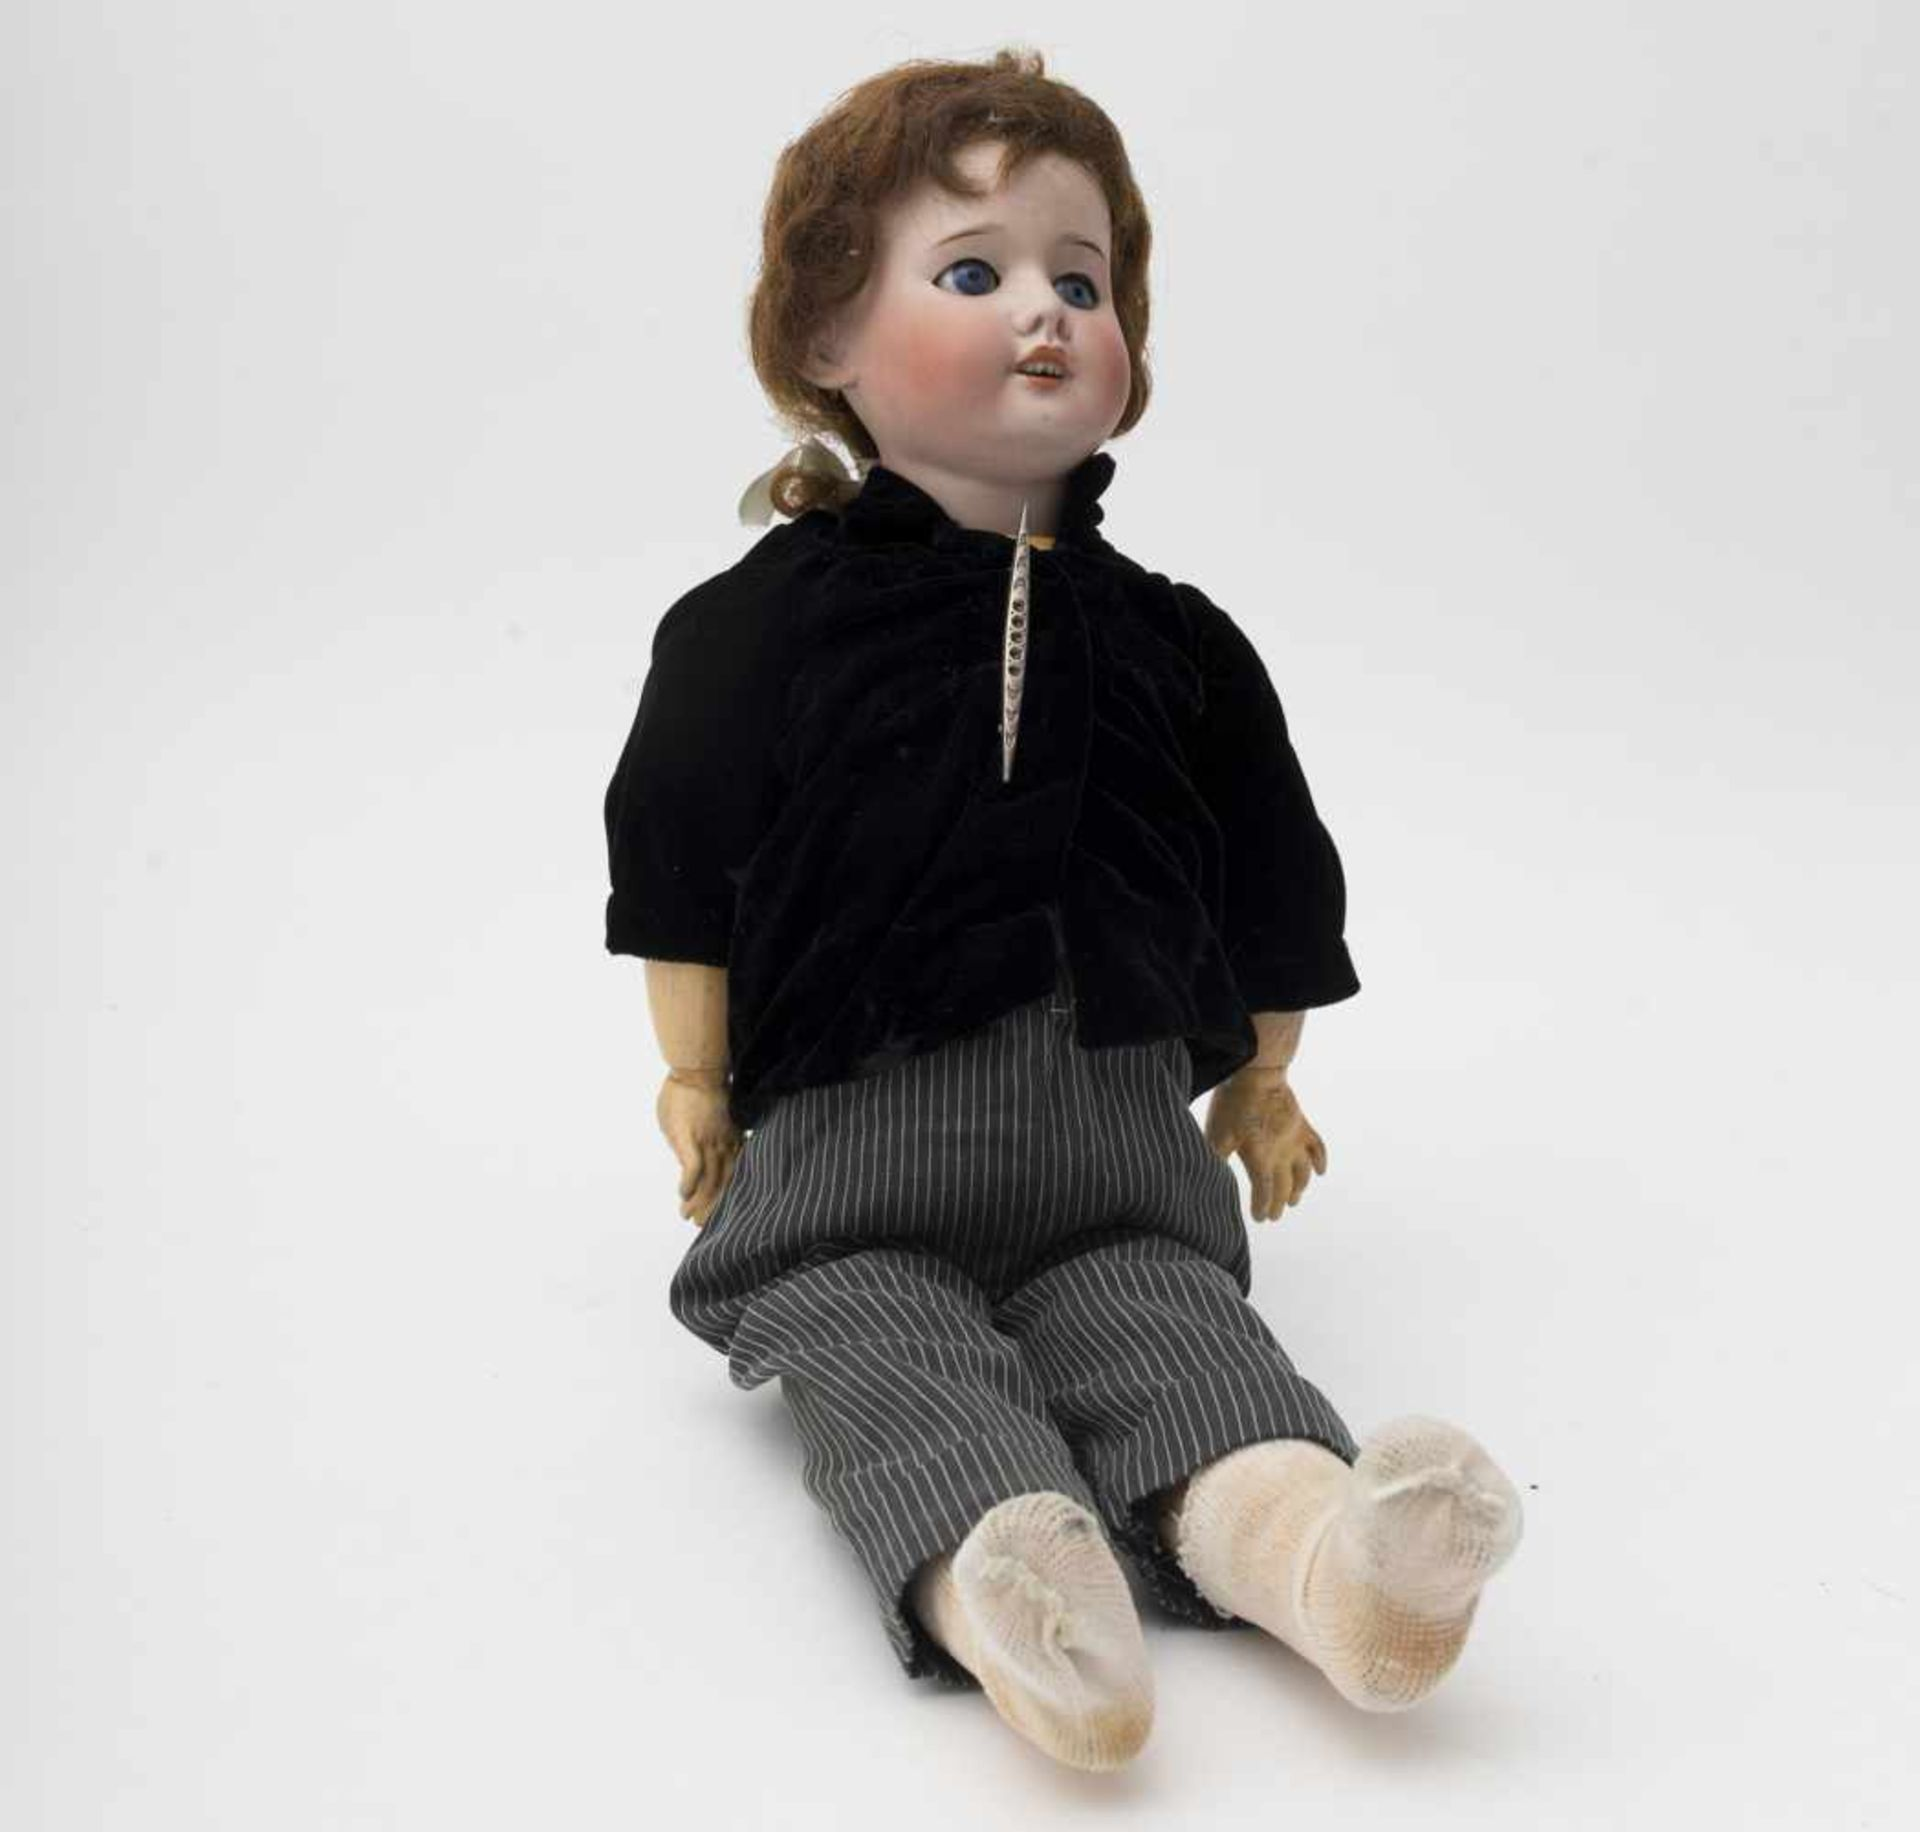 """SFBJ doll With biscuit head, open mouth, branded """"SFBJ 60"""", size 3, blue sleeping eyes, manual"""